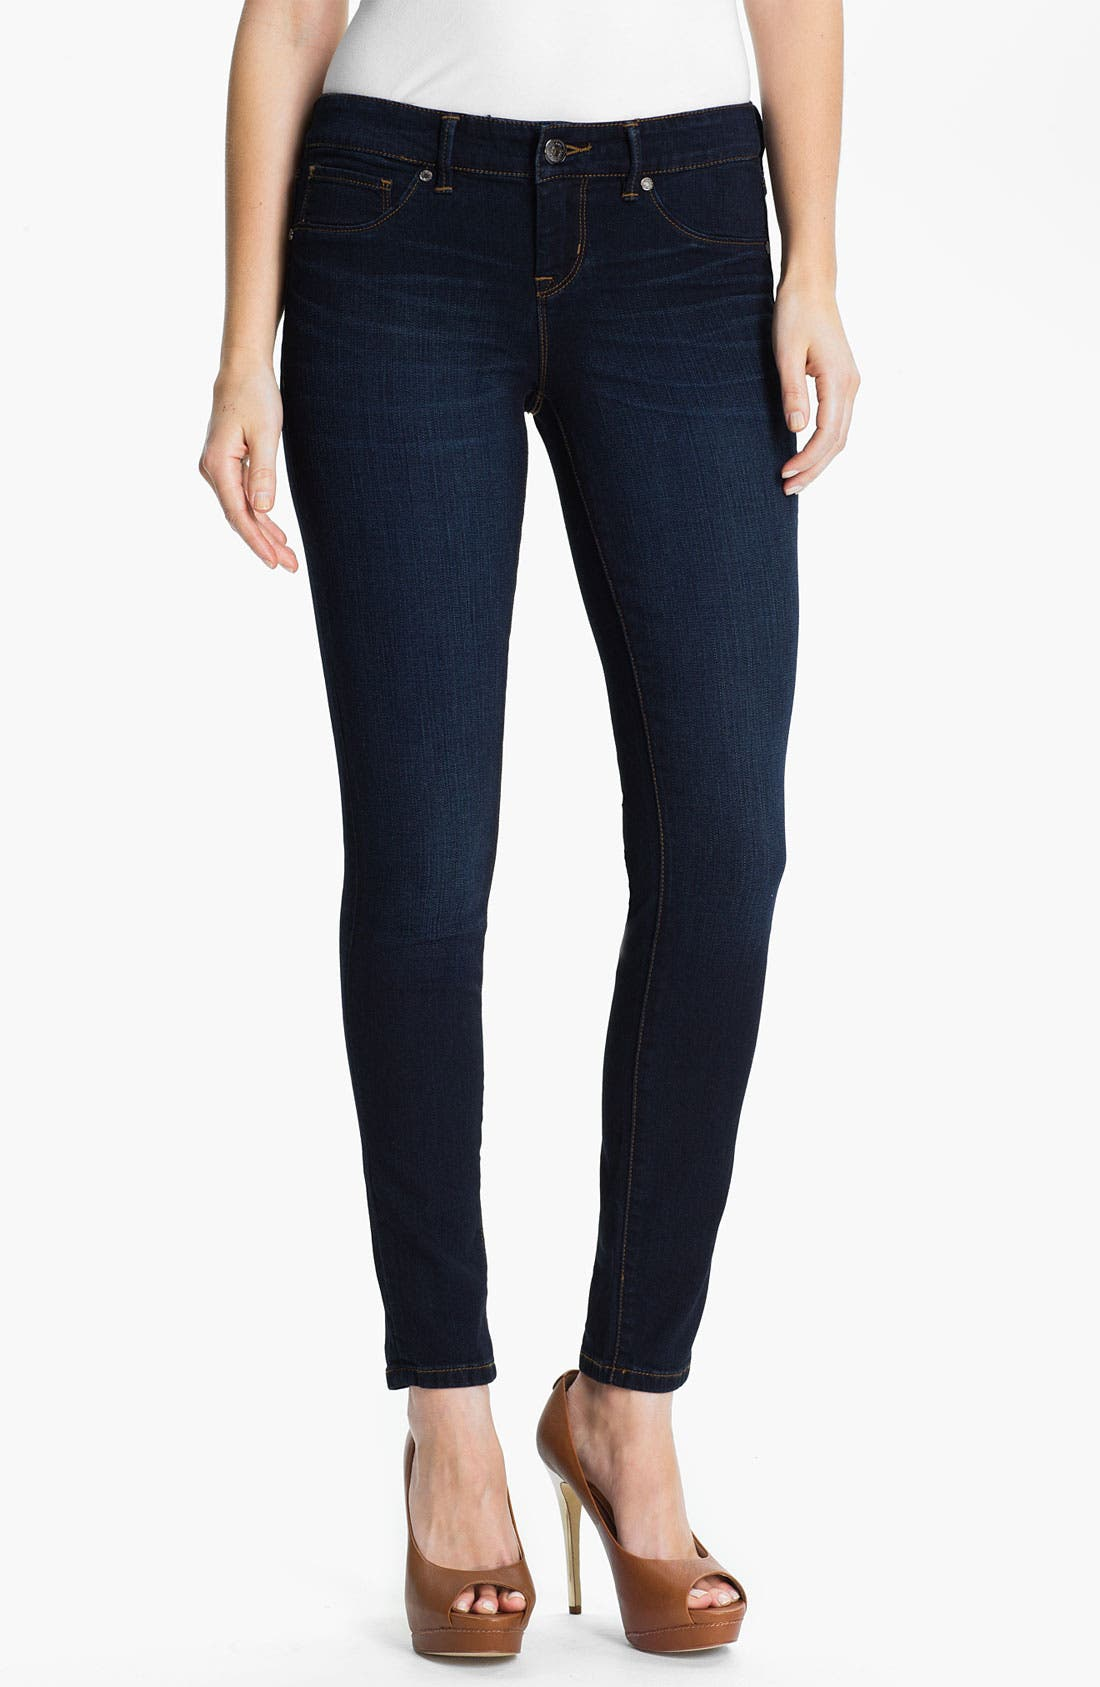 Main Image - Isaac Mizrahi Jeans 'Kendall' Denim Leggings